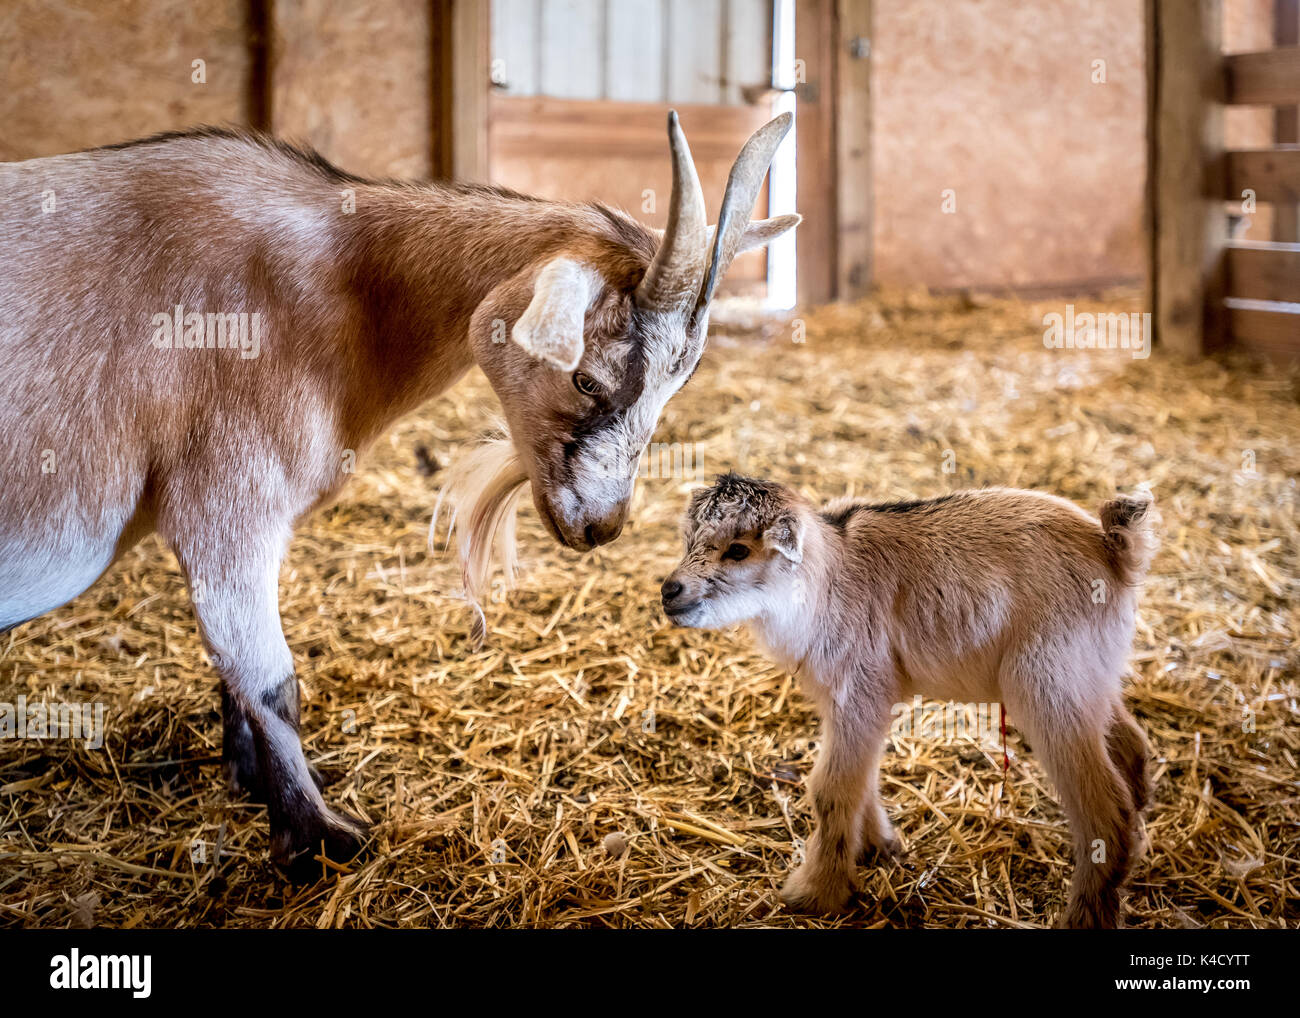 A loving look from mother nanny goat to newborn baby goat, umbilical cord still visible, taking first steps in barn in Oregon's Willamette Valley. - Stock Image